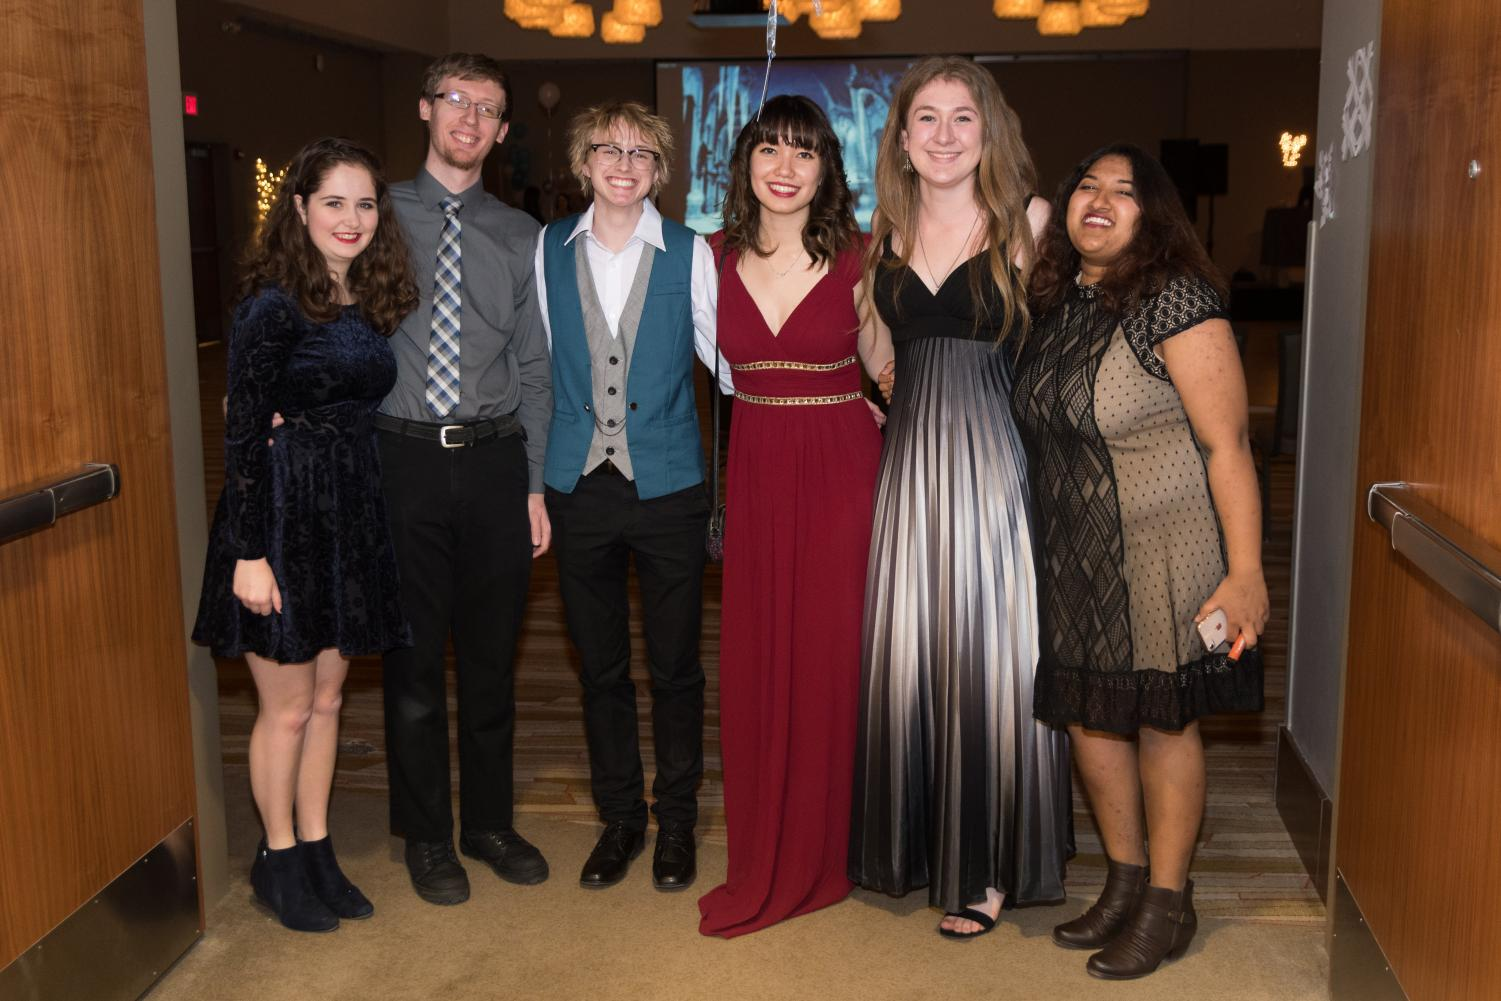 Yule Ball attendees (from left to right) Becca Sullivan and Aryk Sullivan pose with students Kai Wiest, Holly Miller, Clair Markuson and Apurva Chakravorty, who are working the door. The third annual Yule Ball took place at the I Hotel Conference Center on Jan. 19.